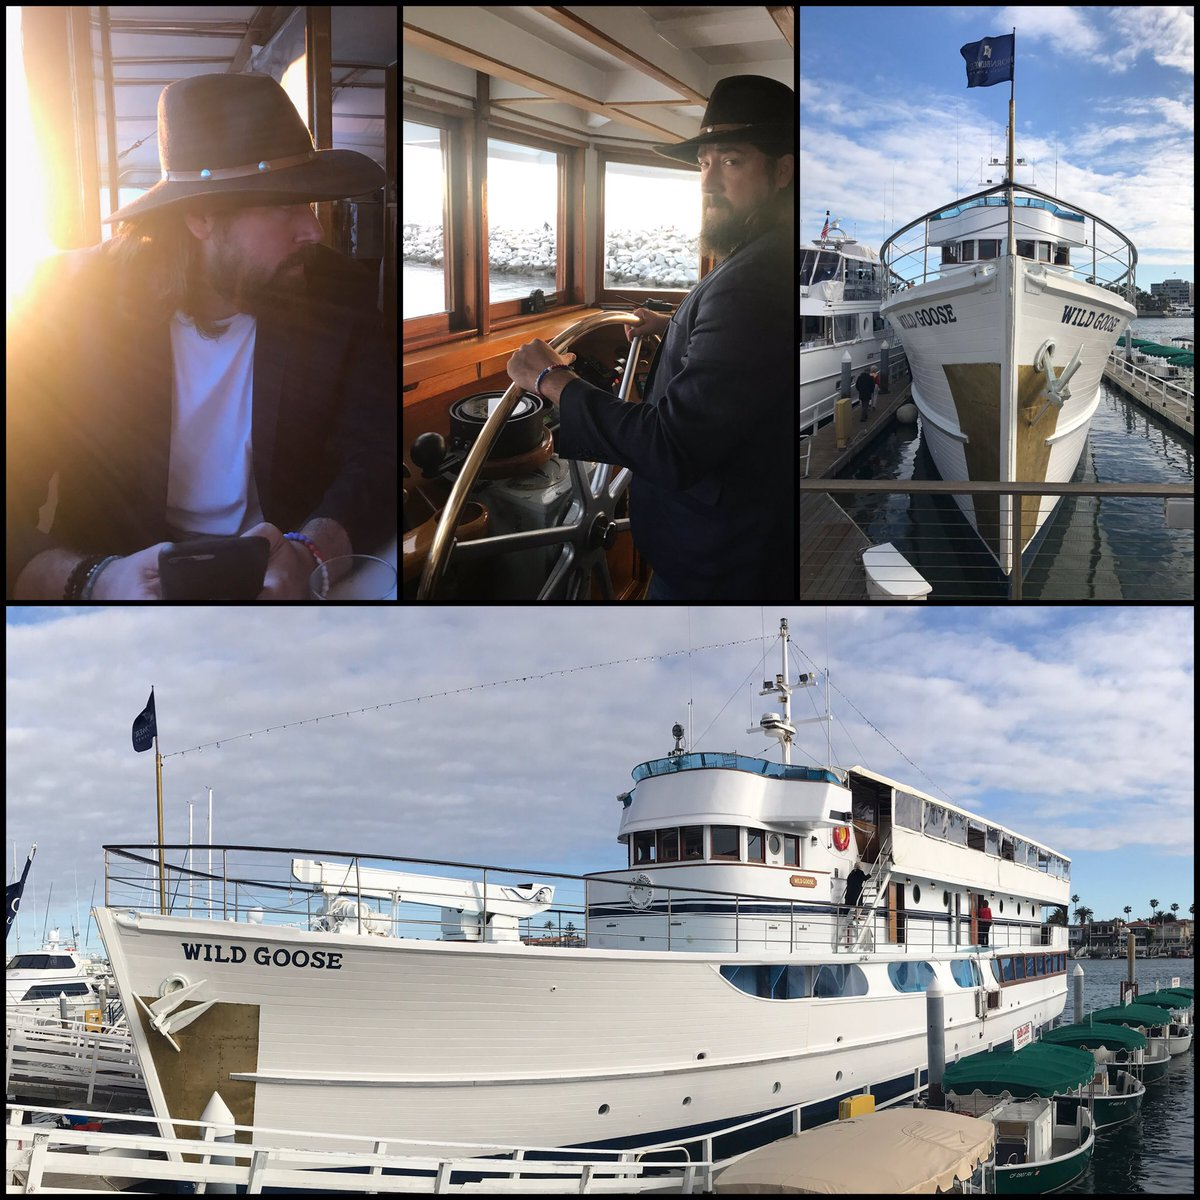 Great time supporting the @JoinJohnWayne  - got rocked out by @runawayjune aboard the Duke's #WildGoose#ShowYourGrit https://t.co/eb7DDxHaYT